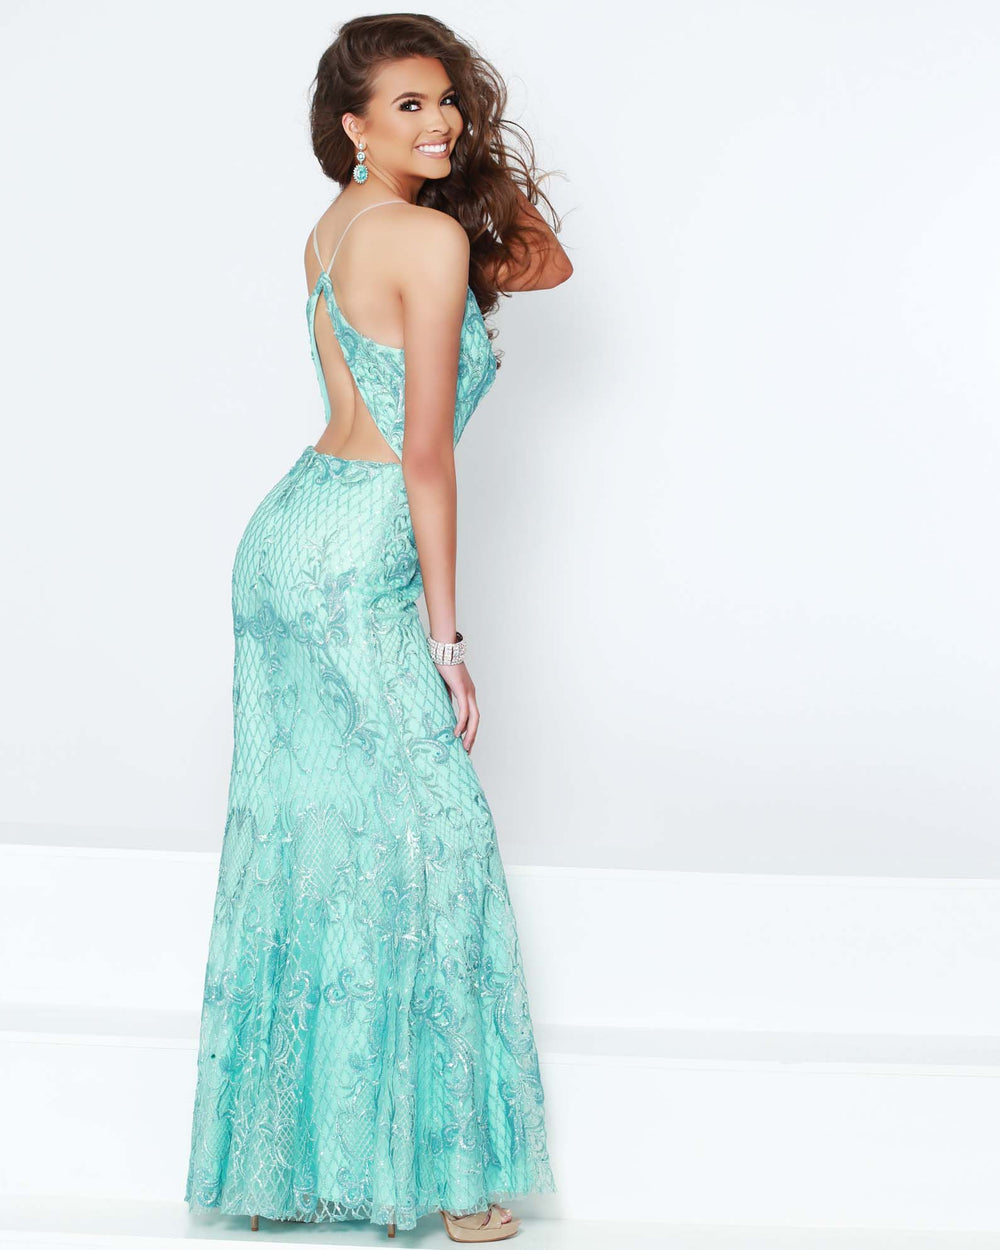 2Cute 91242 long attractive gown